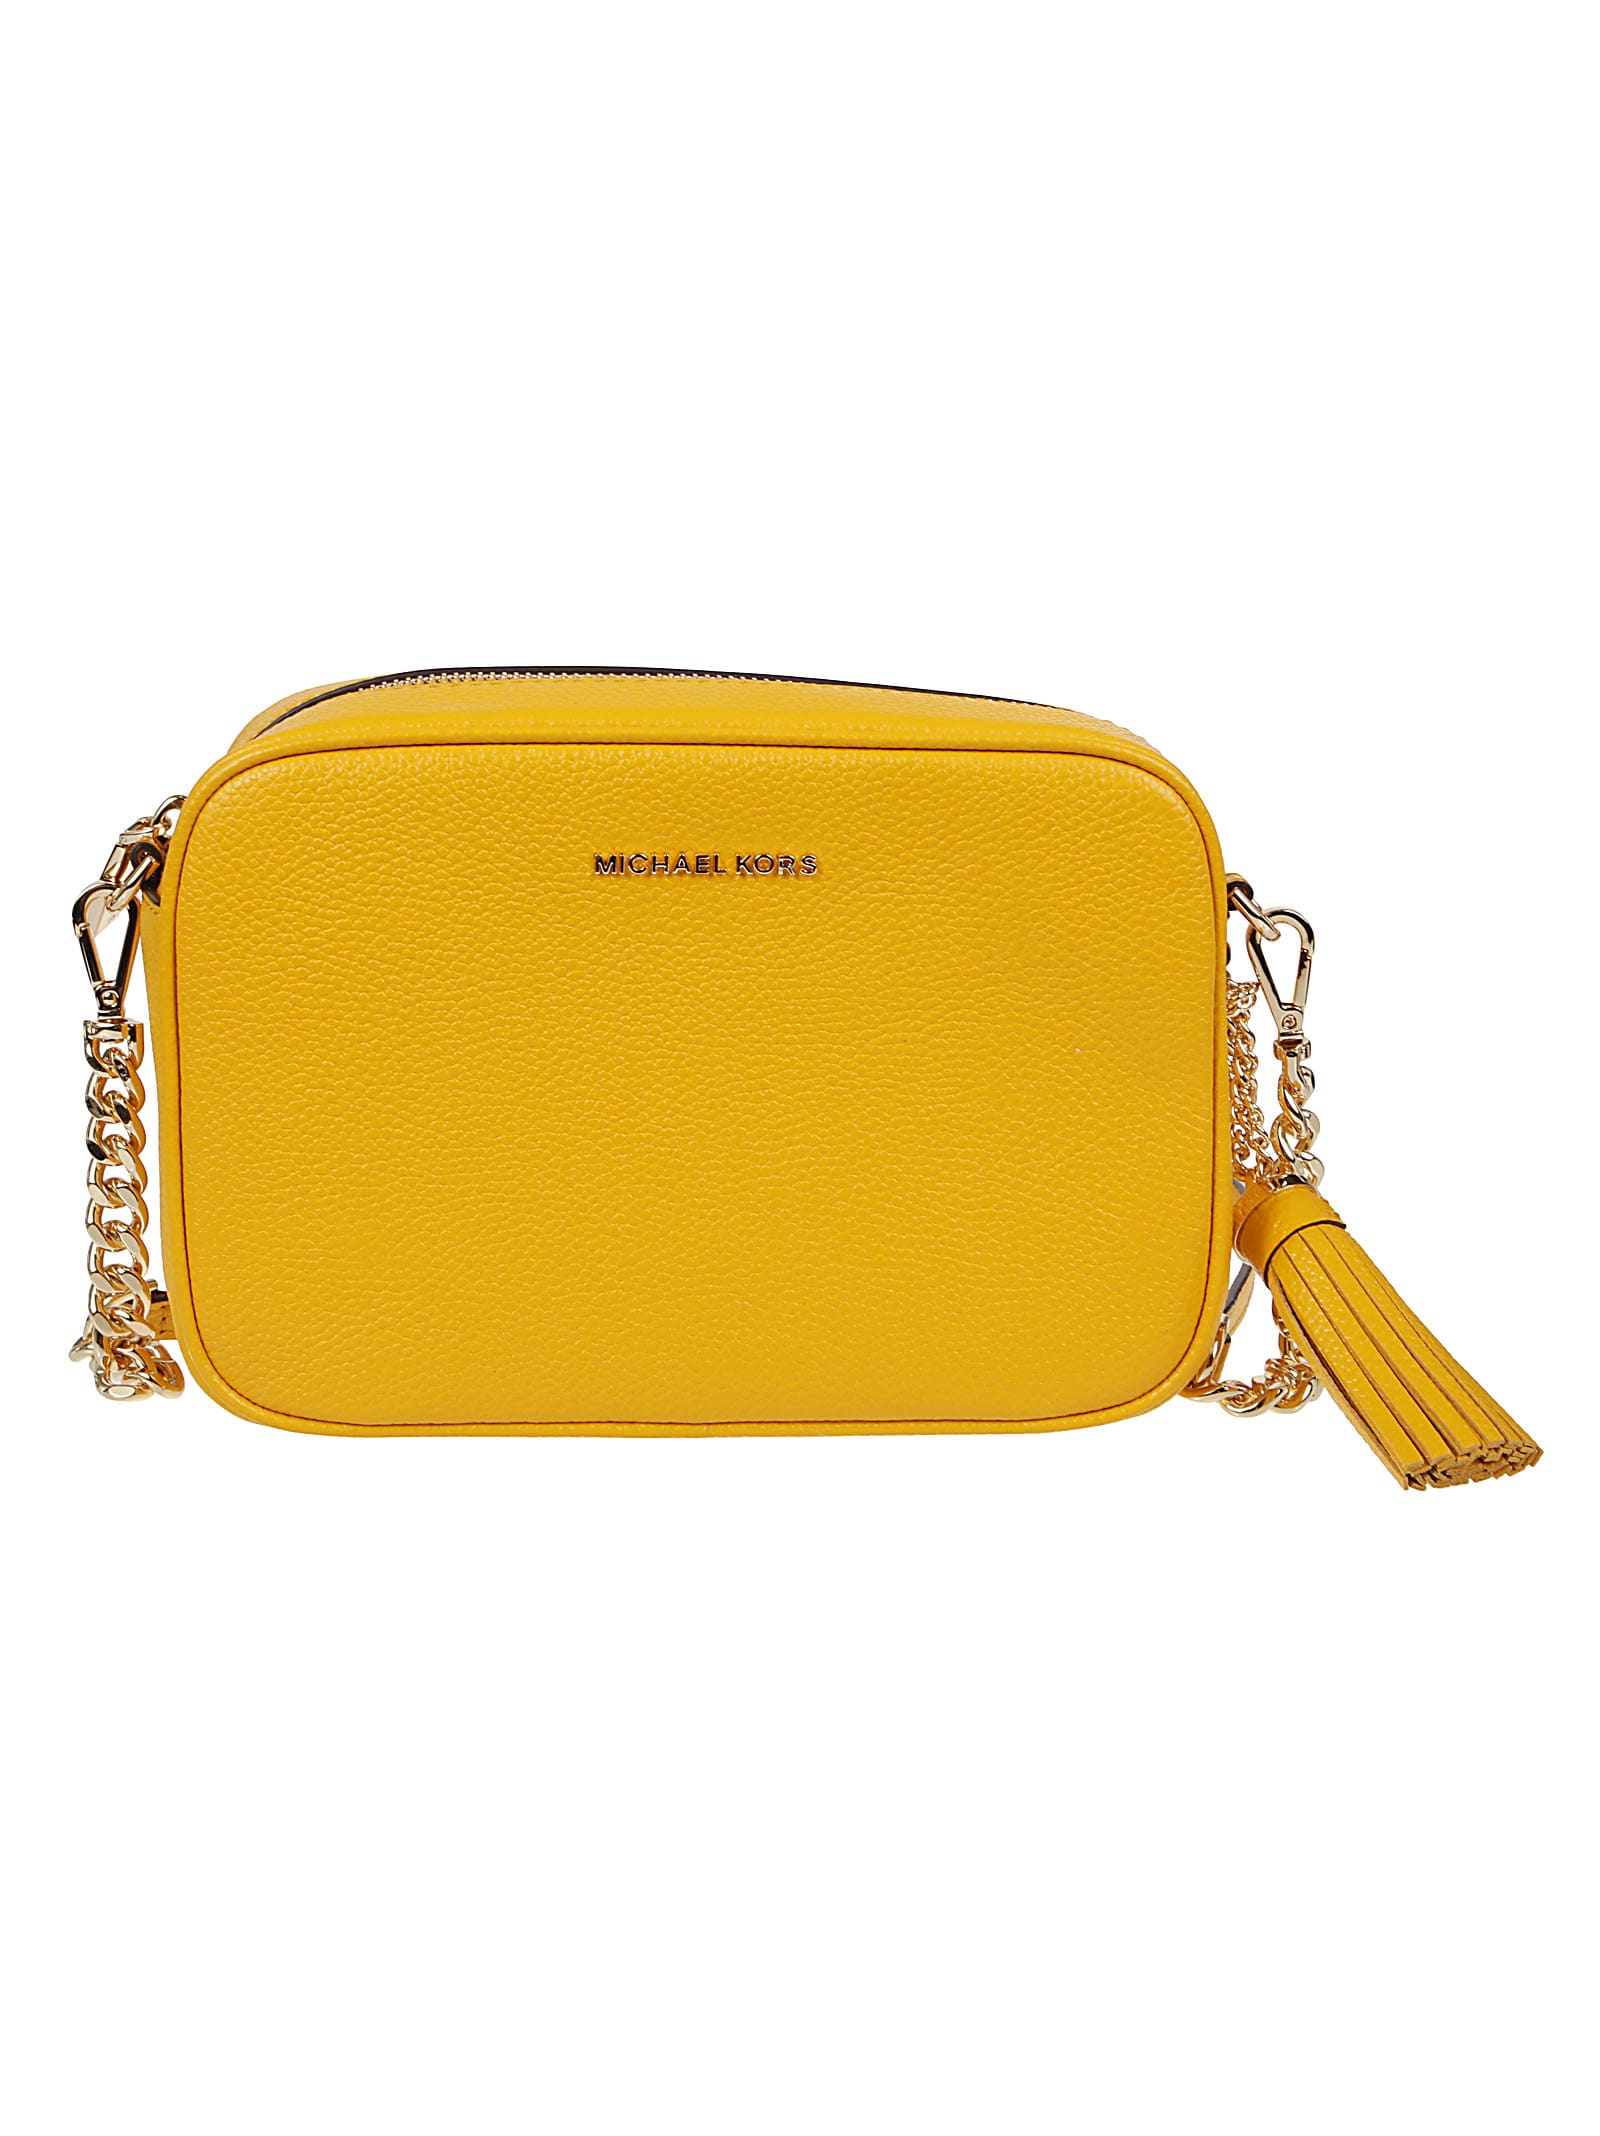 Michael Kors MD CAMERA BAG